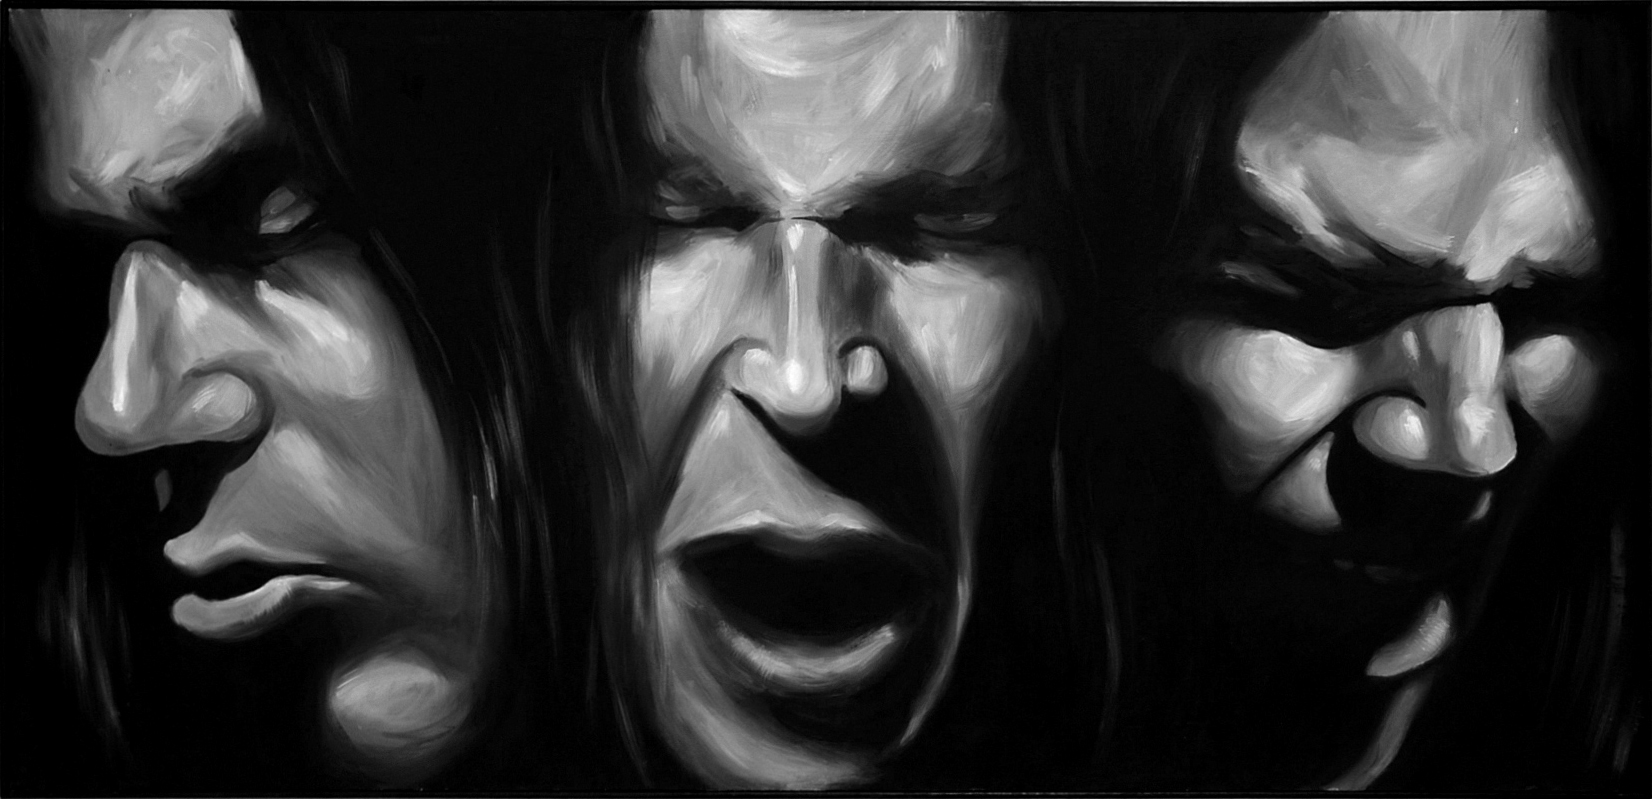 'Dr. Shakes' Oil on Board (60 x 130cm)